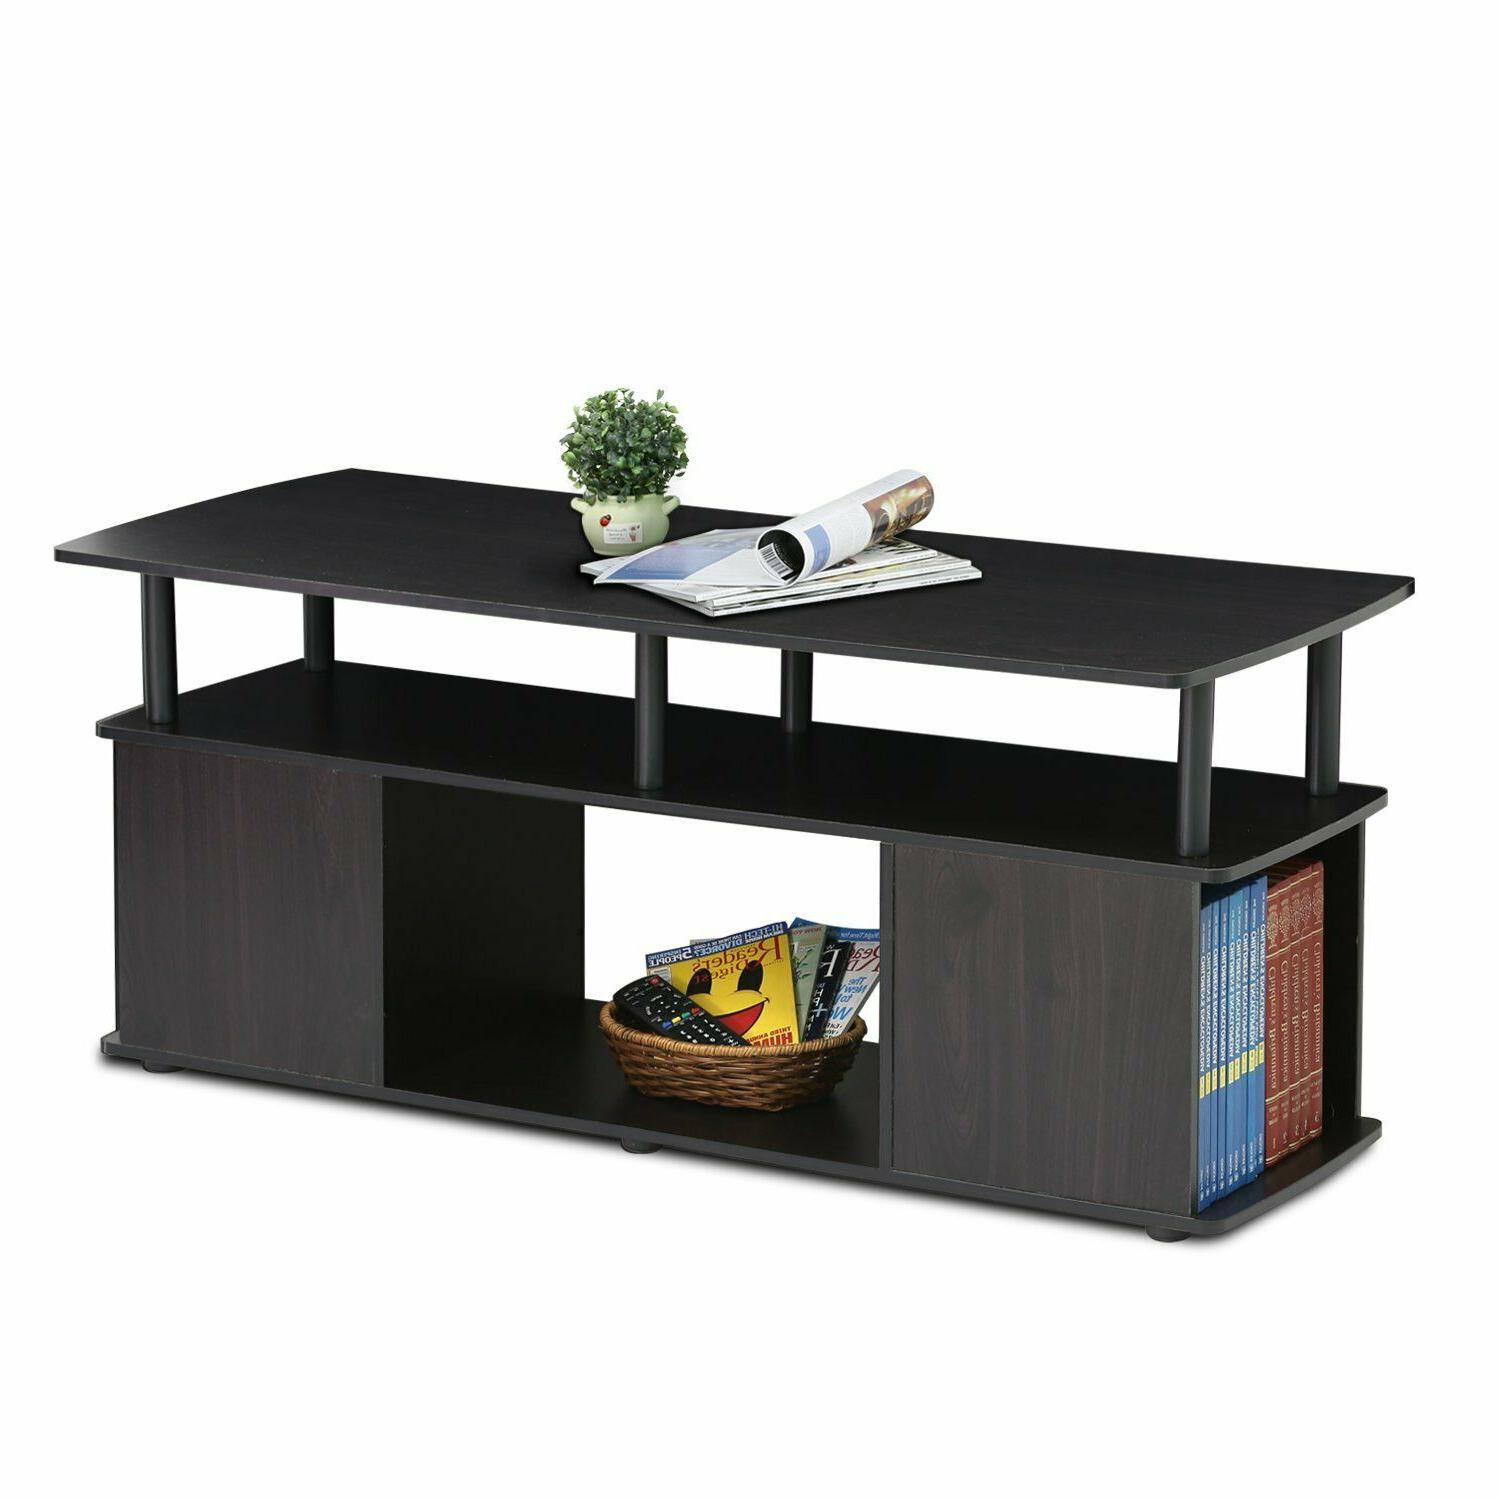 Coffee Table TV Stand For Living Room Bedroom Space Saving T